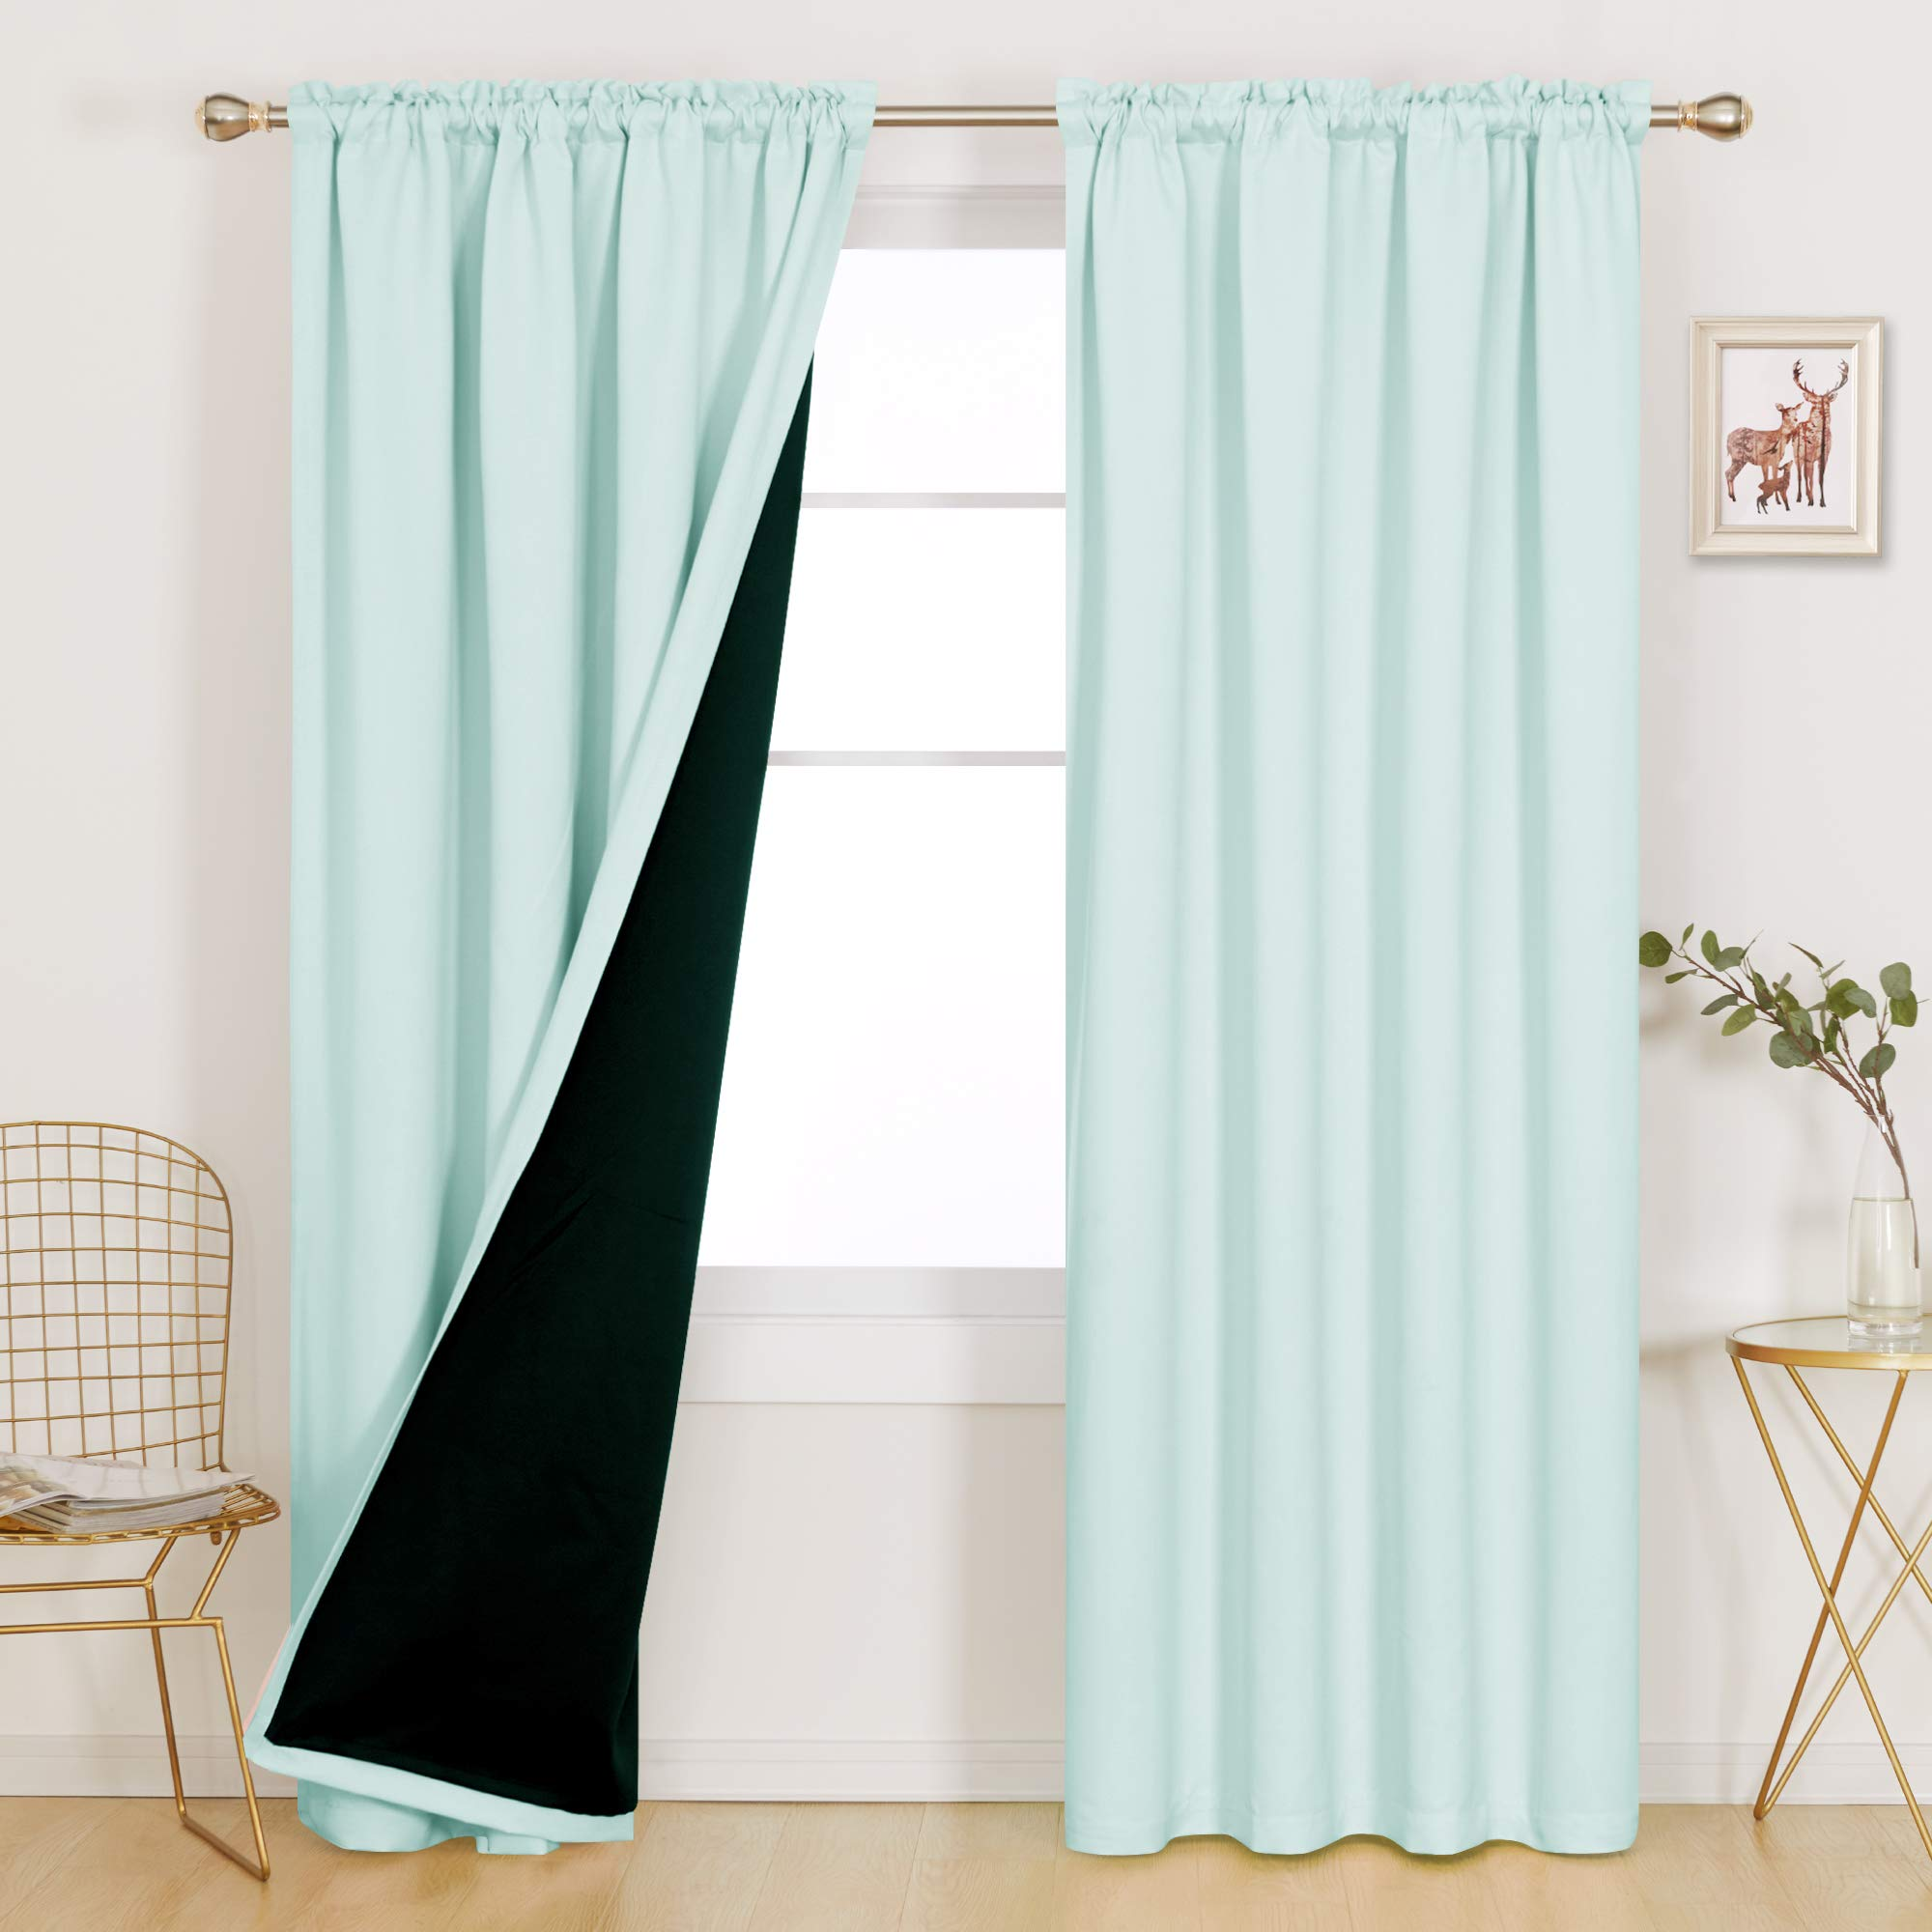 Deconovo Thermal Insulated Total Blackout Curtains Double Layer Backing 100% Full Light Noise Blocking Rod Pocket Window Drapery for Bedroom Living Room, 1 Pair, 52x95 in Each Panel, Baby Blue